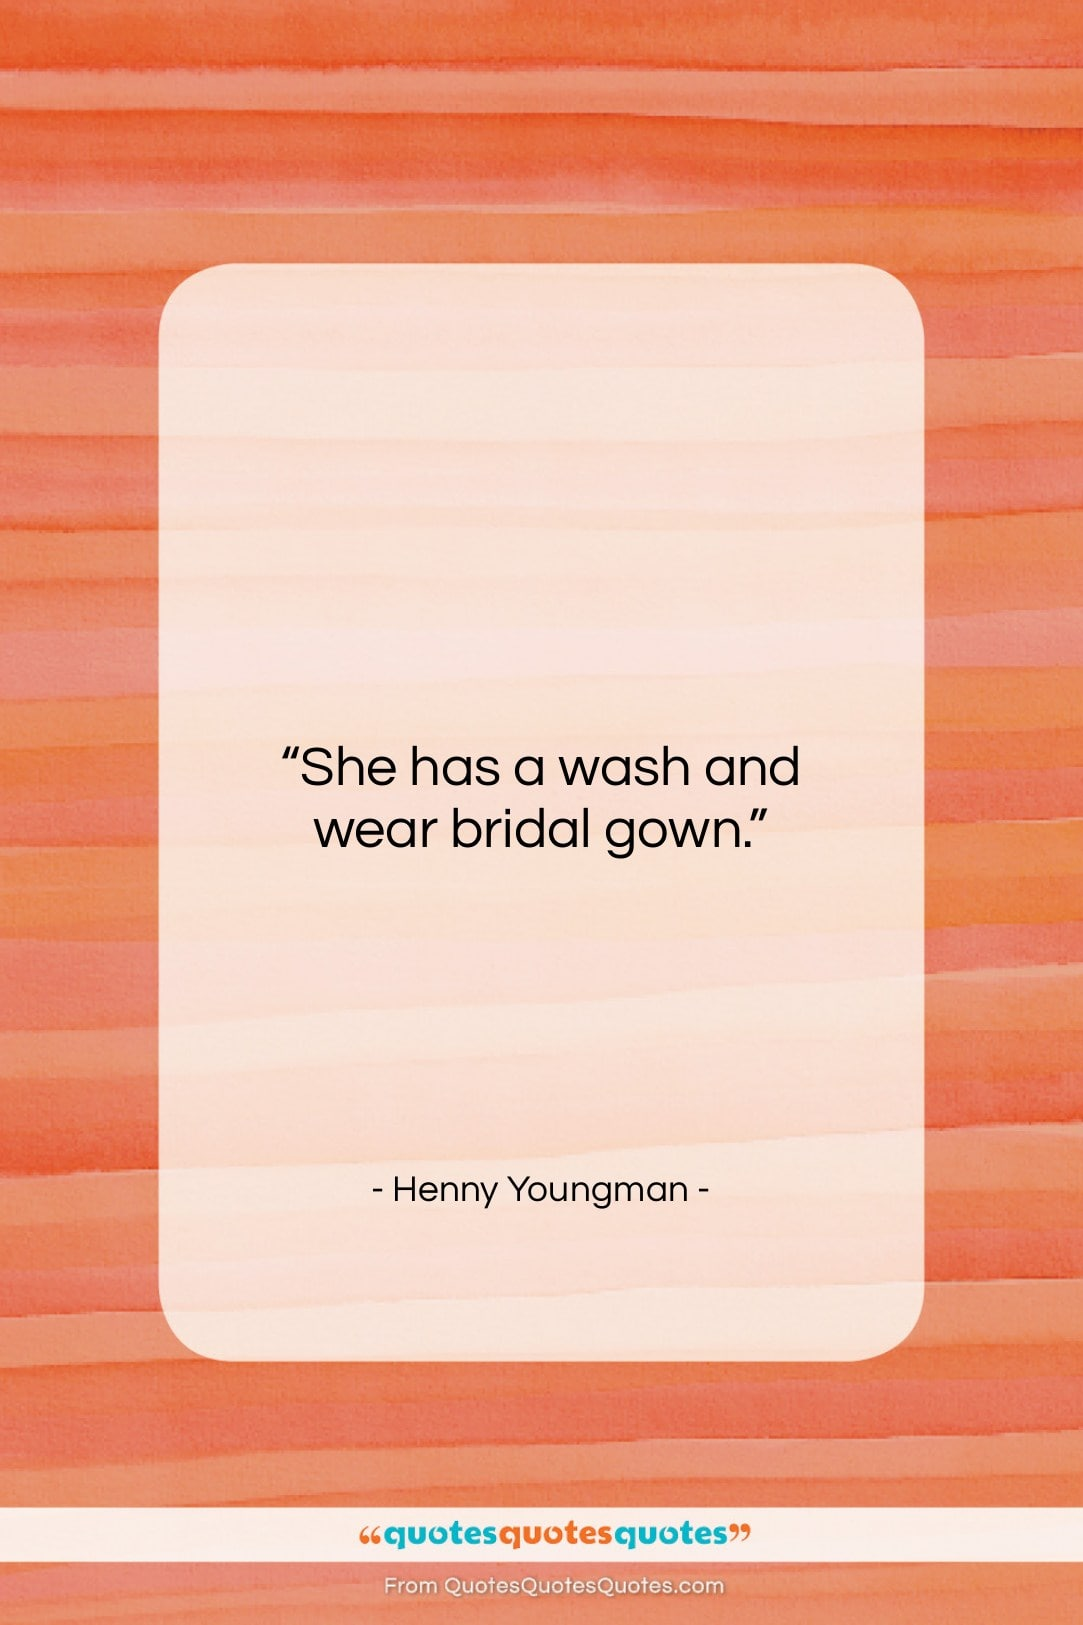 """Henny Youngman quote: """"She has a wash and wear bridal…""""- at QuotesQuotesQuotes.com"""